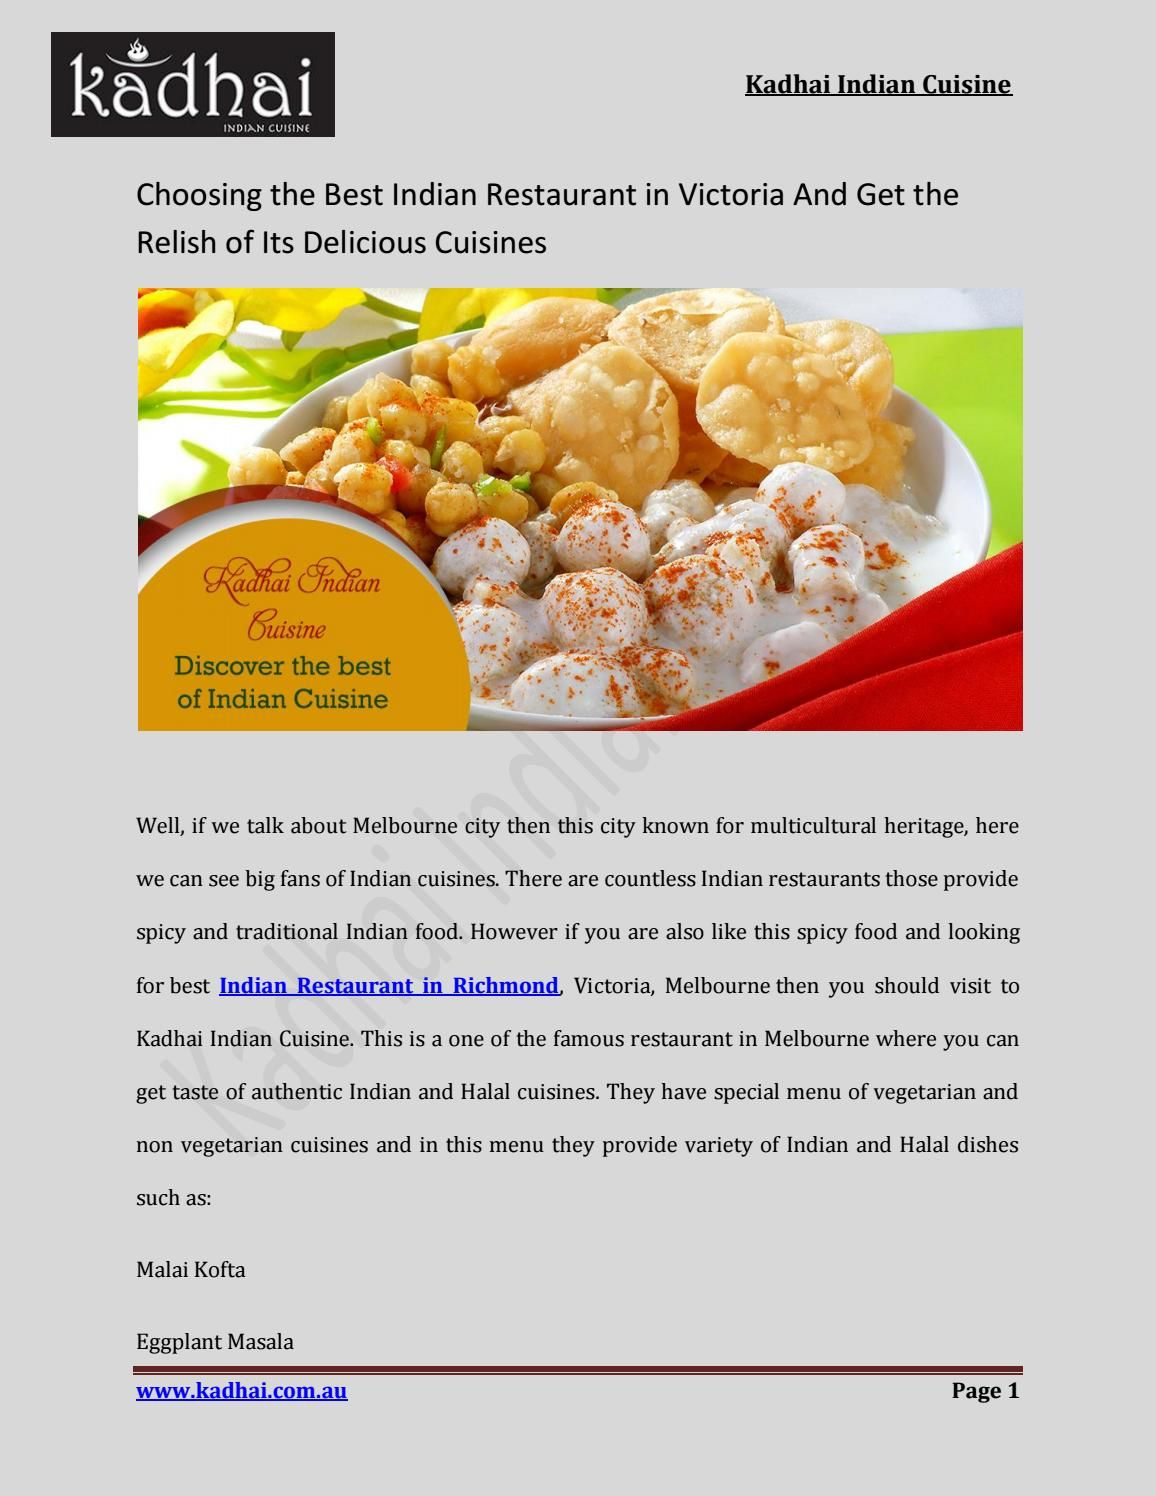 Choosing The Best Indian Restaurant In Victoria And Get The Relish Of Its Delicious Cuisines Australia Cuisine Delicious Veg Dishes